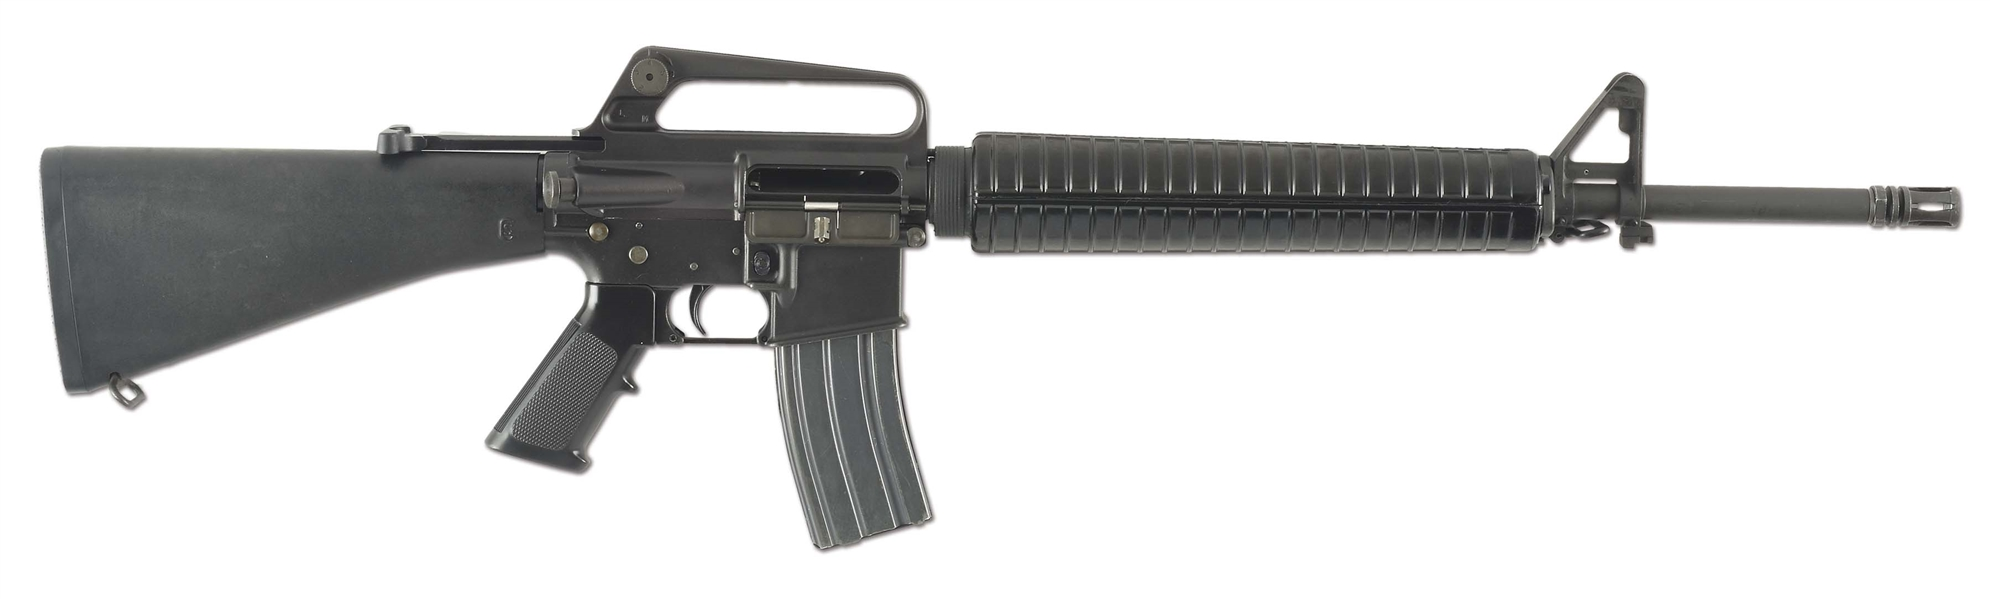 (N) INCREDIBLY RARE AND DESIRABLE GROUP INDUSTRIES STAINLESS STEEL M16A1 MACHINE GUN (FULLY TRANSFERABLE).